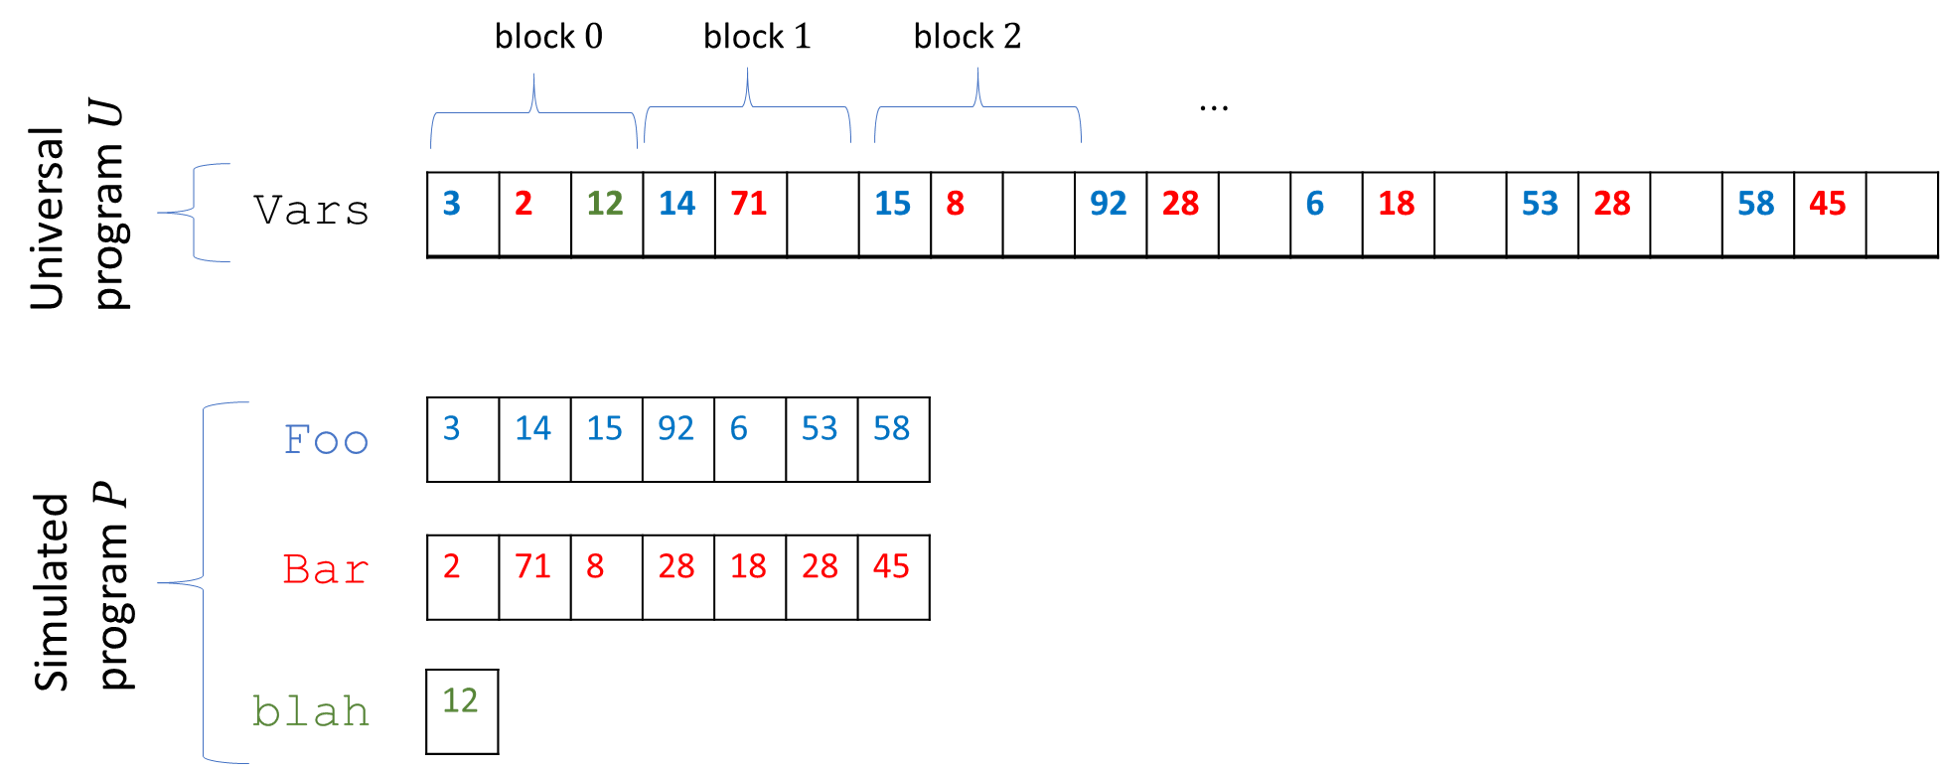 12.5: The universal NAND-RAM program U simulates an input NAND-RAM program P by storing all of P's variables inside a single array Vars of U. If P has t variables, then the array Vars is divided into blocks of length t, where the j-th coordinate of the i-th block contains the i-th element of the j-th array of P. If the j-th variable of P is scalar, then we just store its value in the zeroth block of Vars.